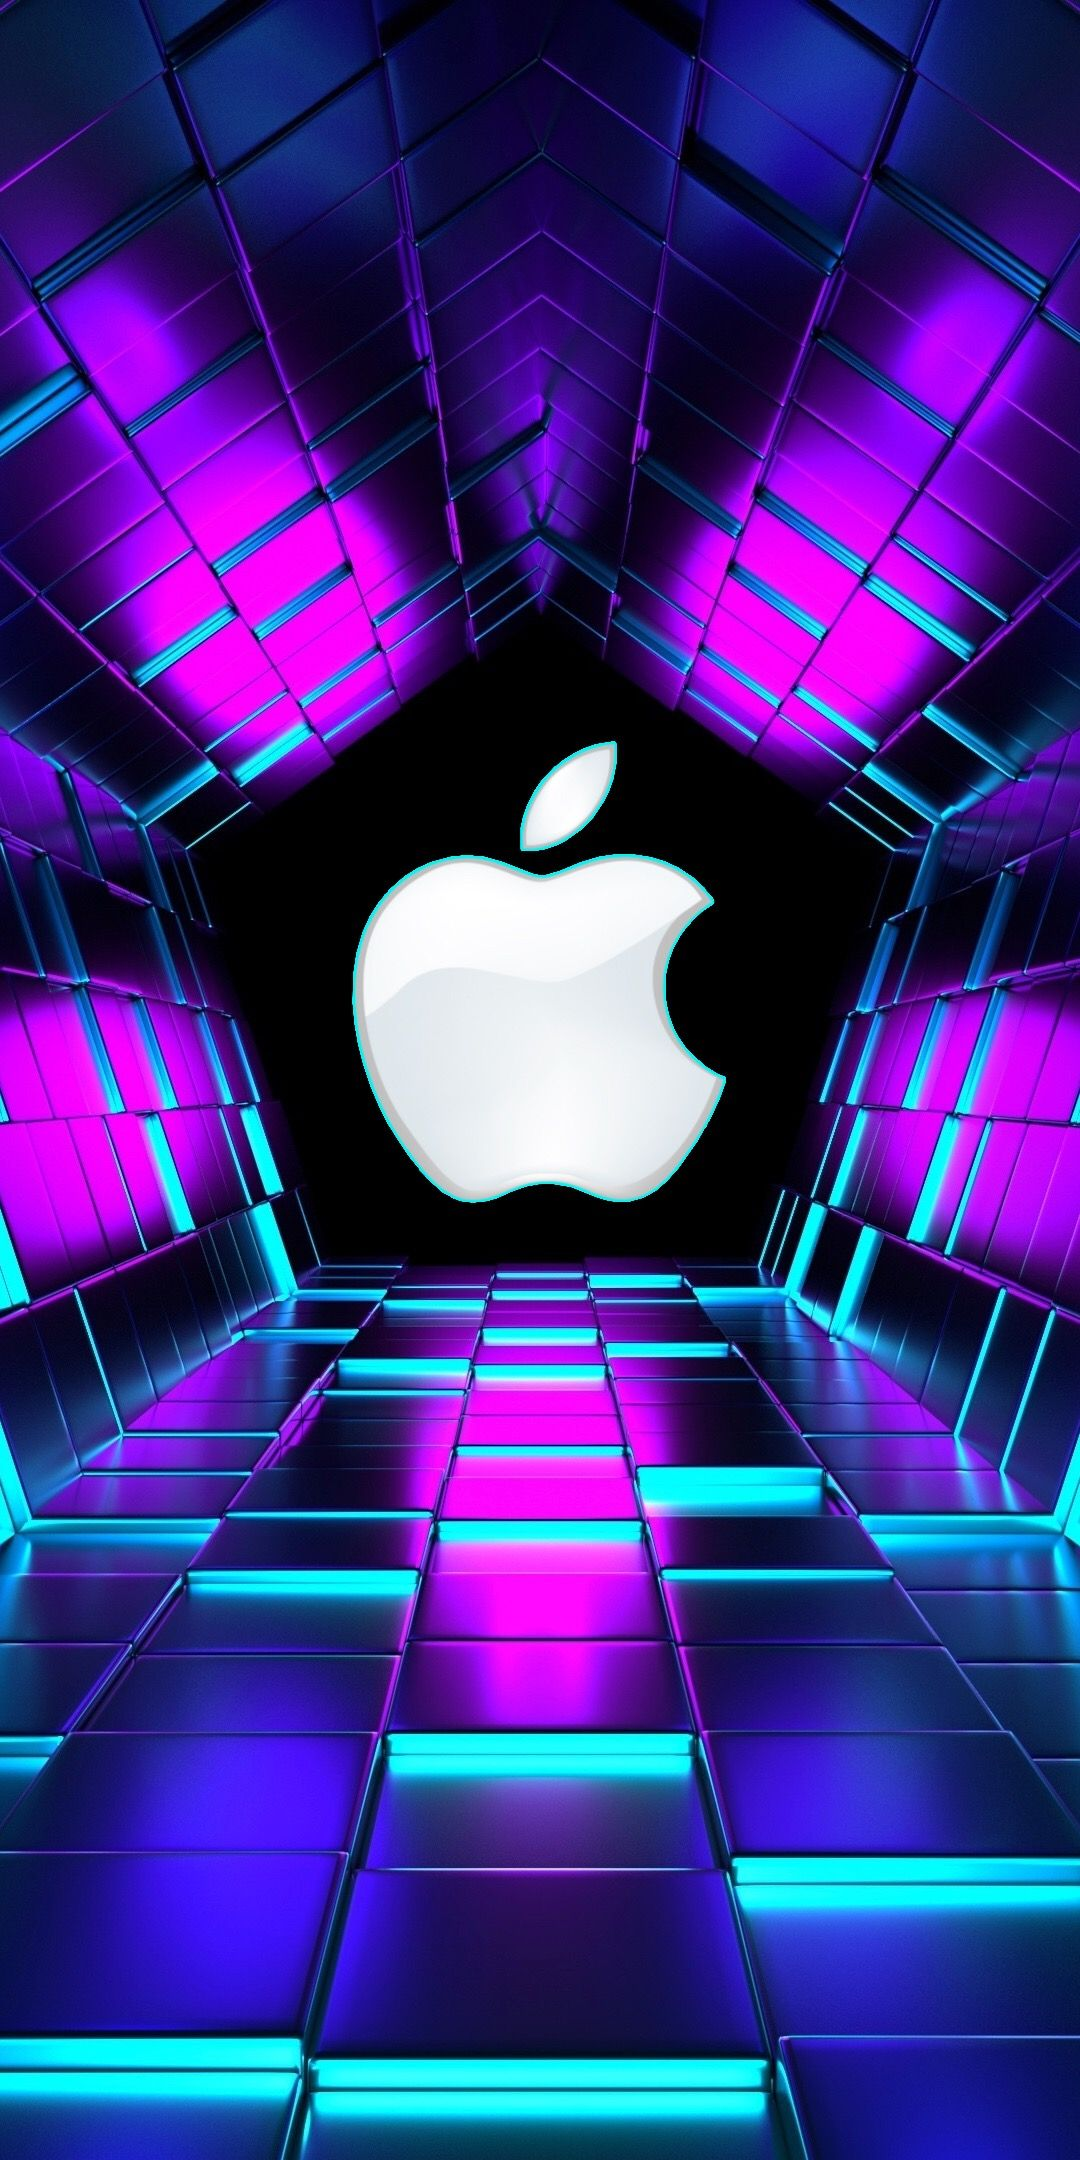 Pin By Brave Lord On My Apple Logos Purple Wallpaper 3d